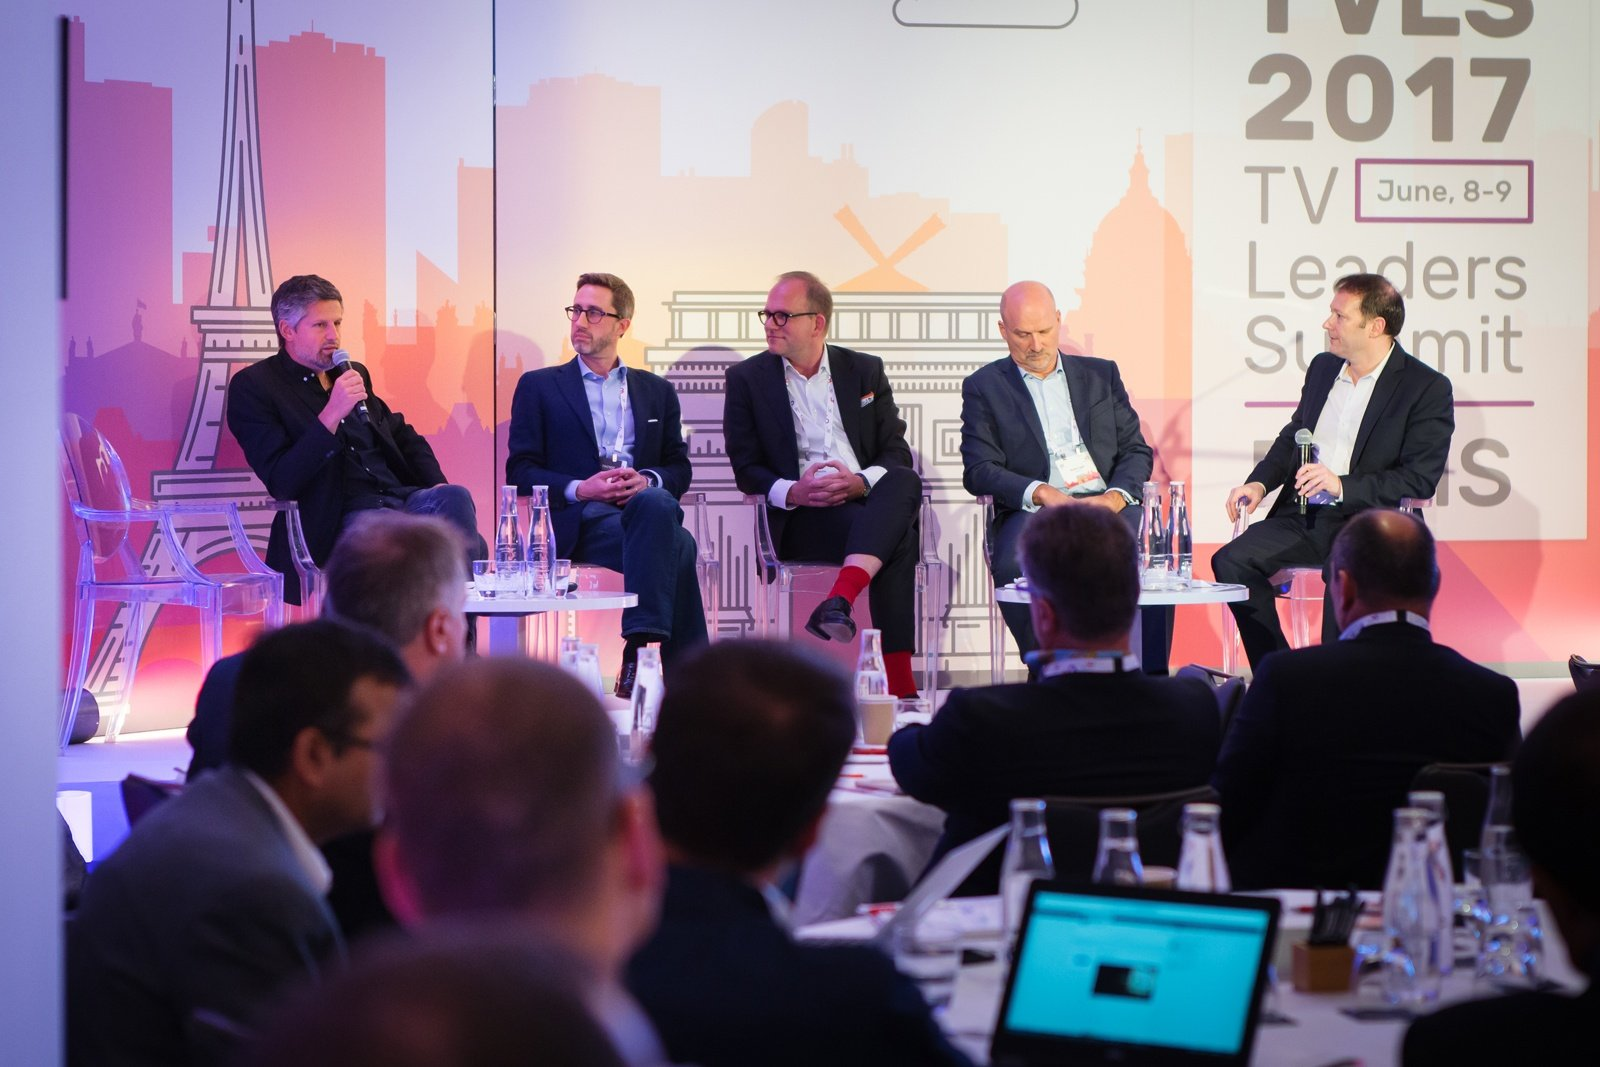 Big Data's Influence on the TV Industry